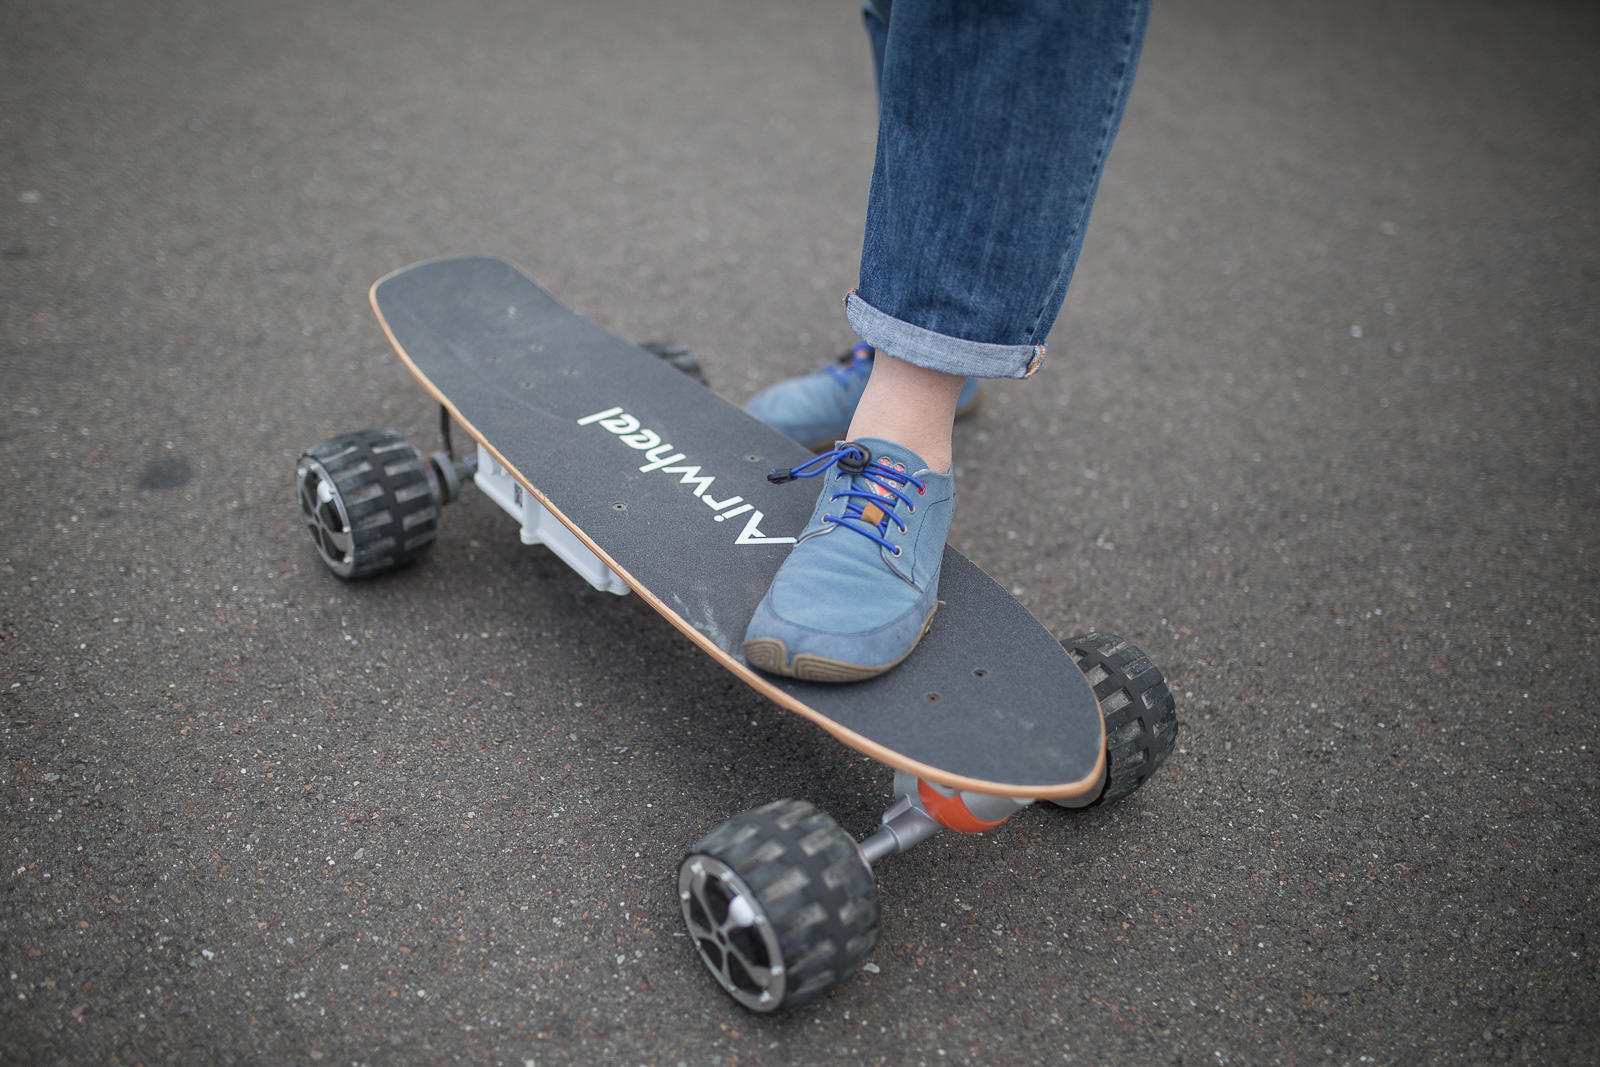 air wheel board Bilder